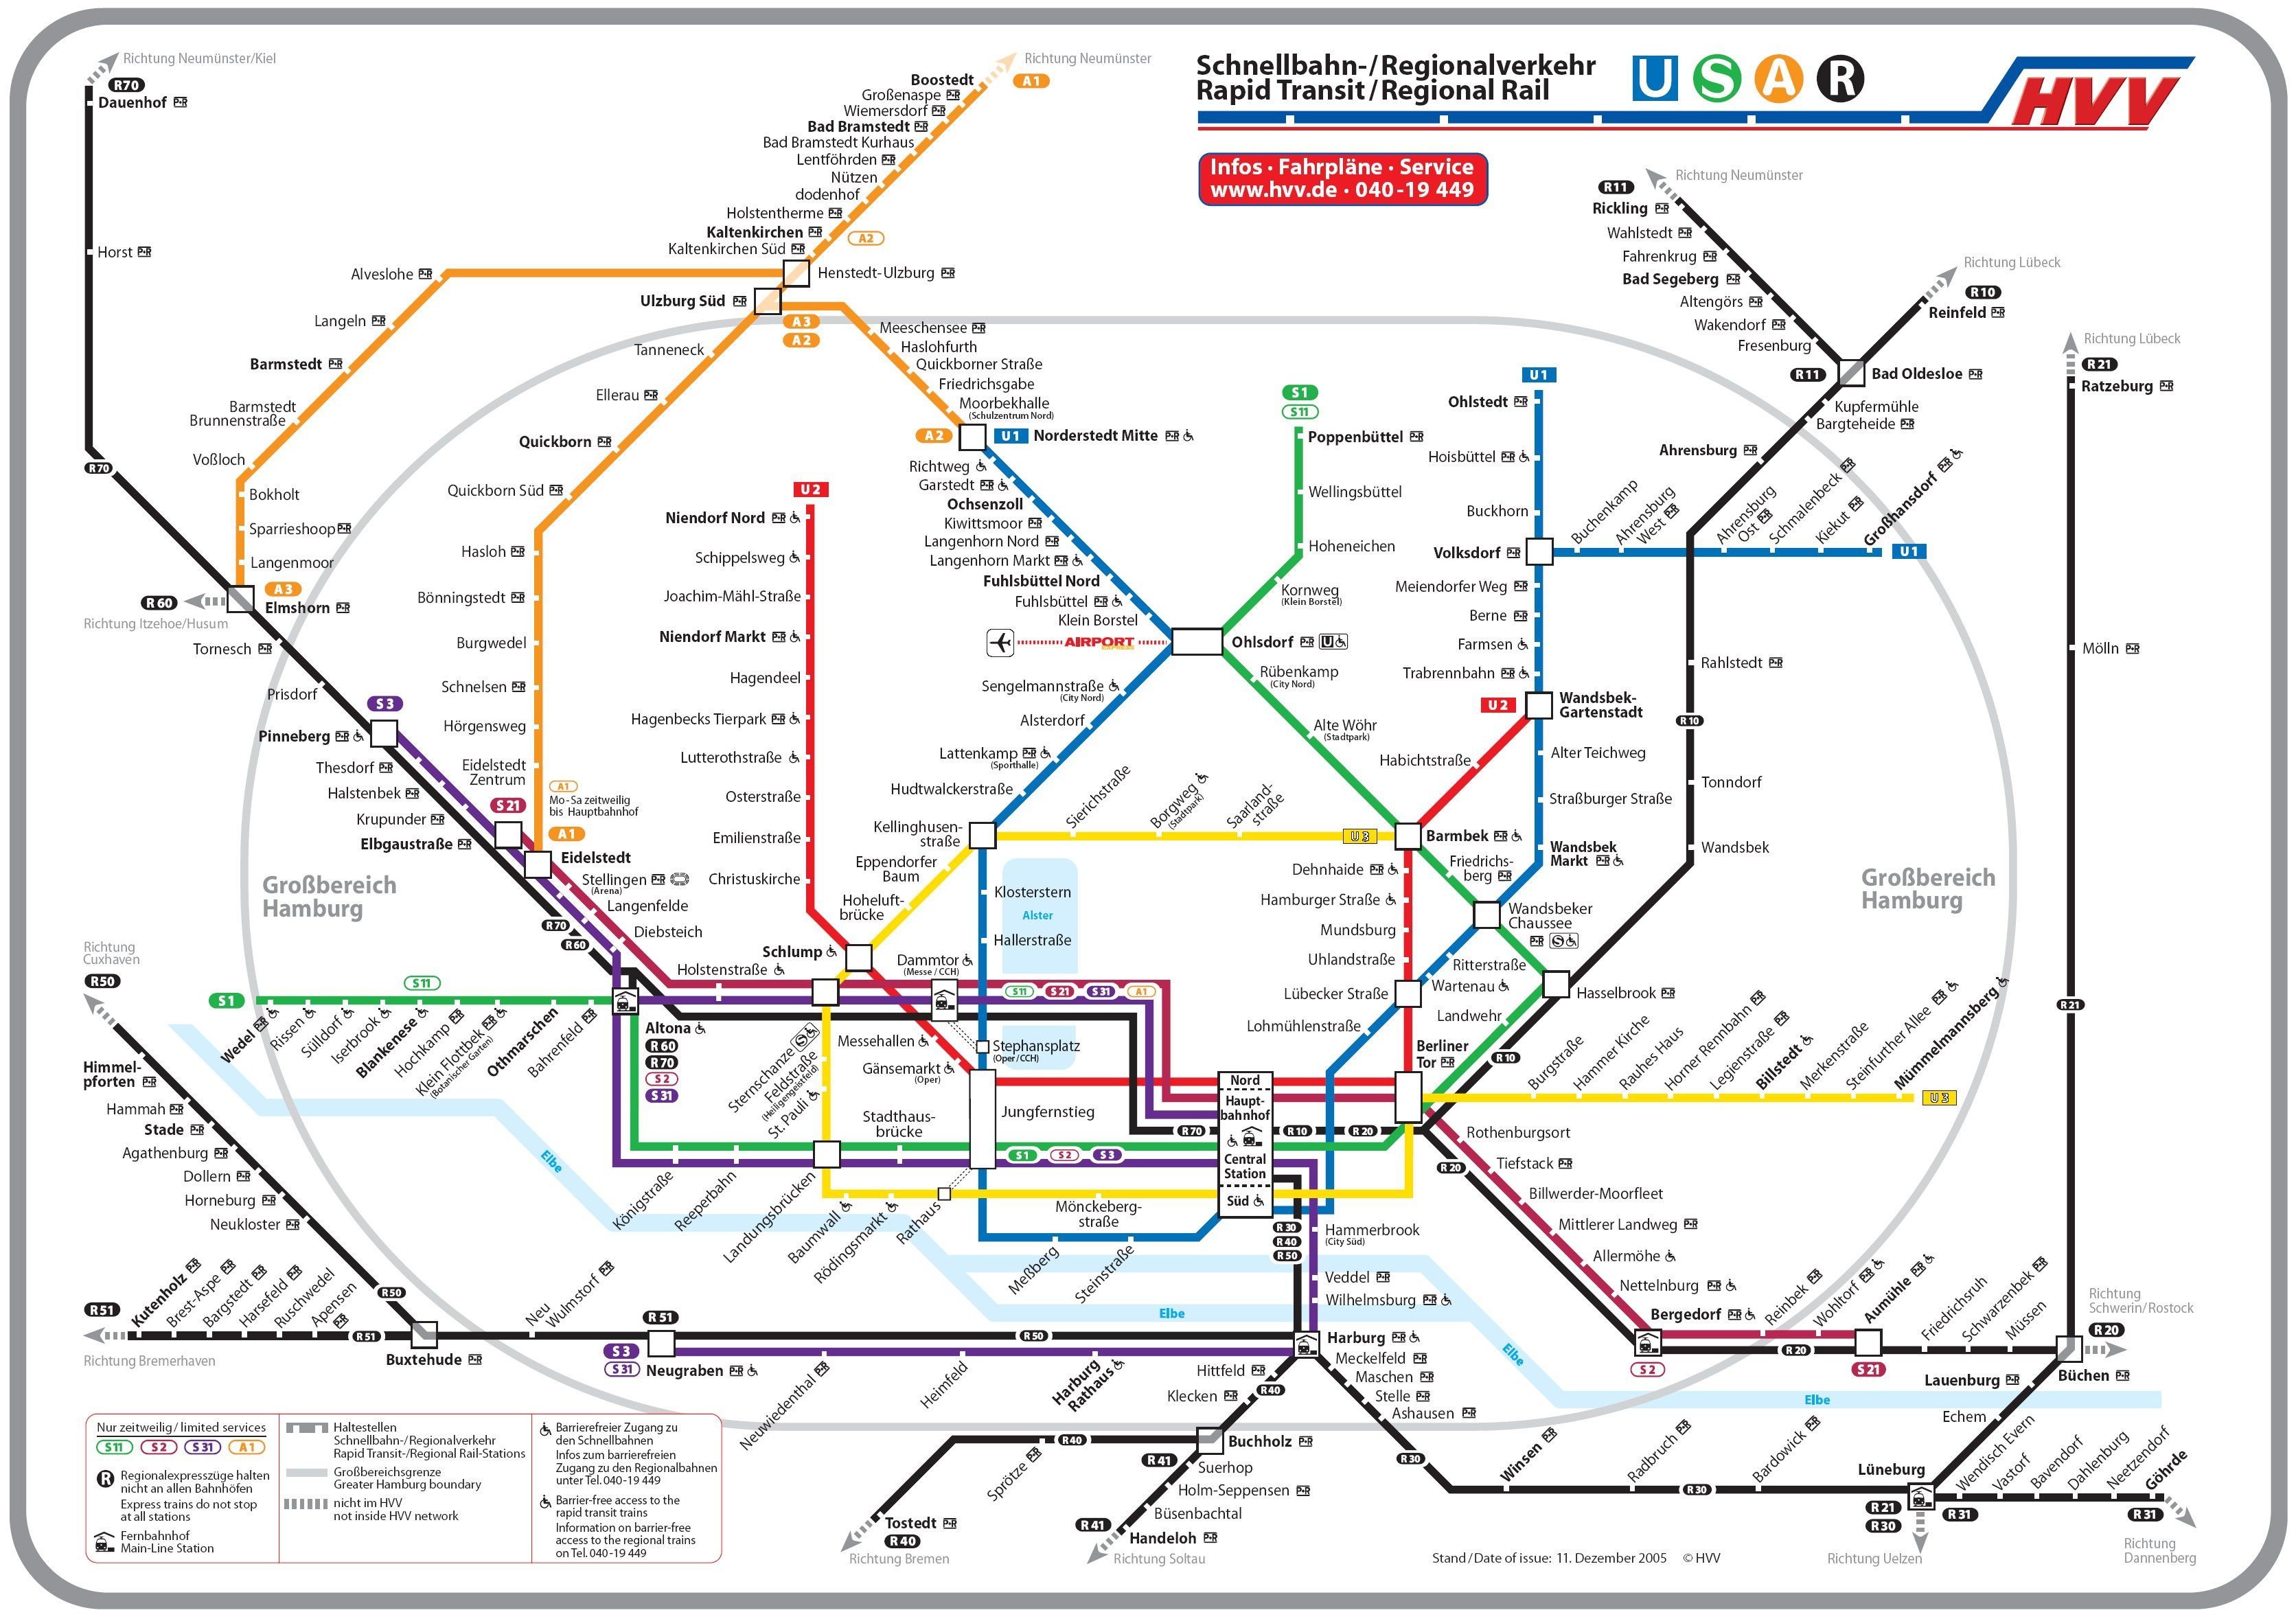 Toronto Subway Map Print.Hamburg Bahn Map Print As Poster Rainy Day Activities In 2019